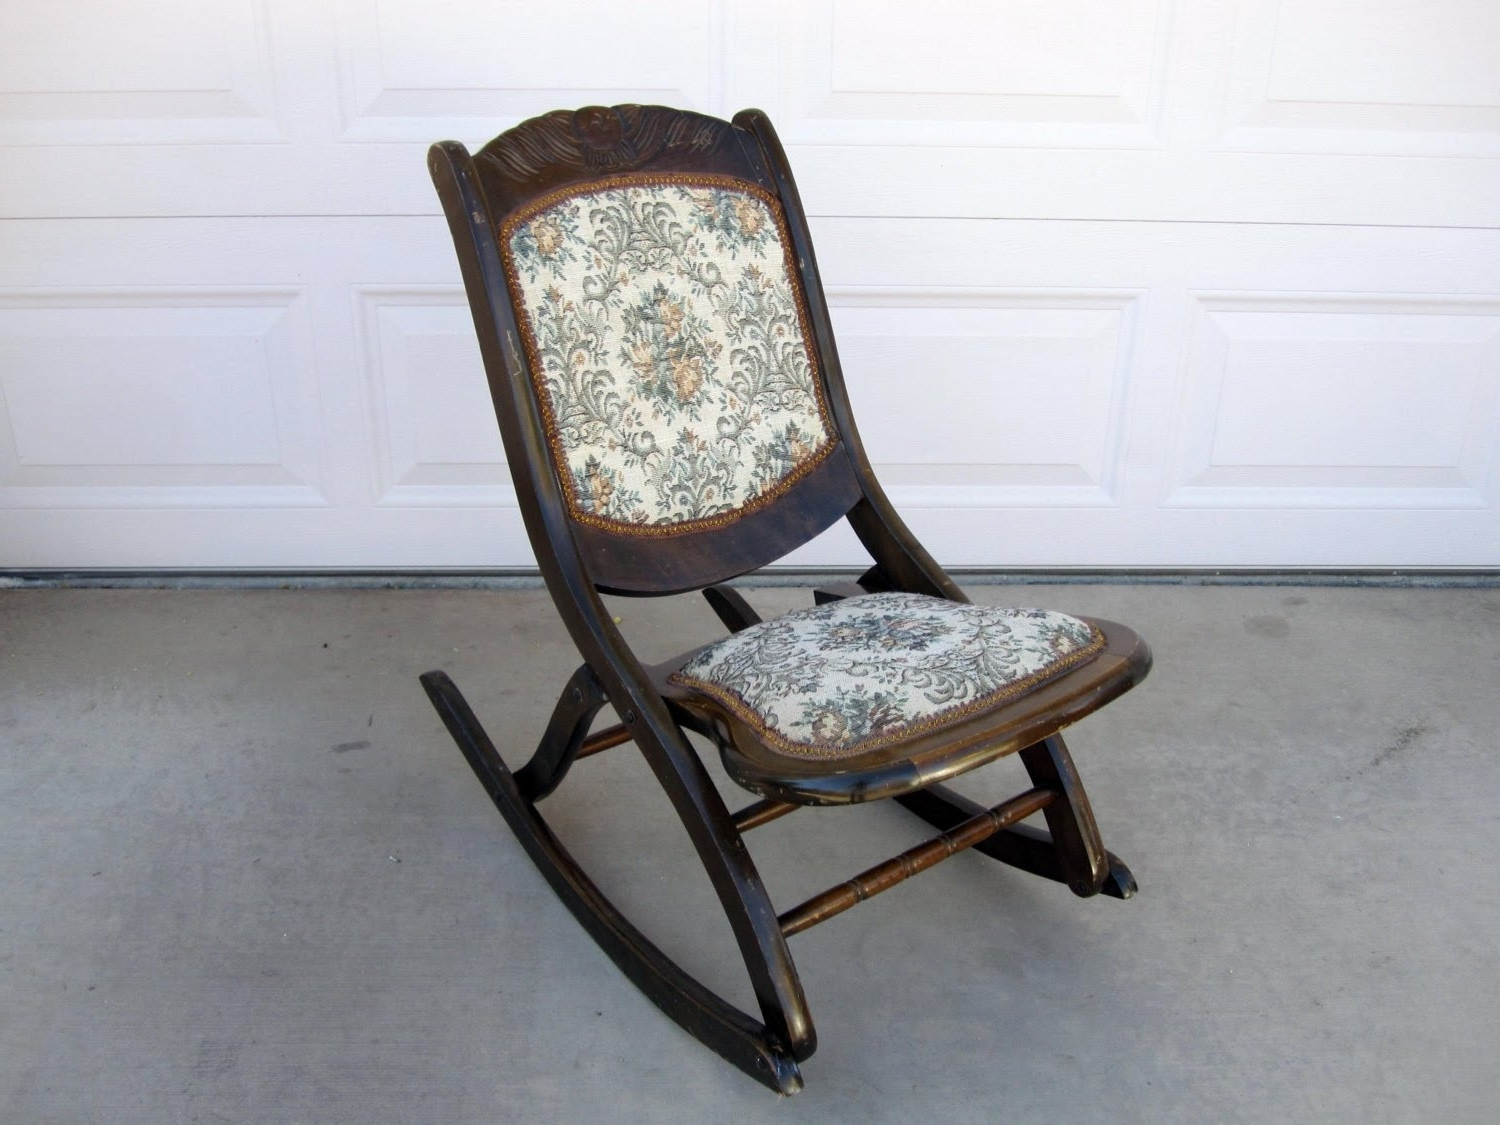 Ergonomic Wooden Rocking Chair (View 7 of 15)